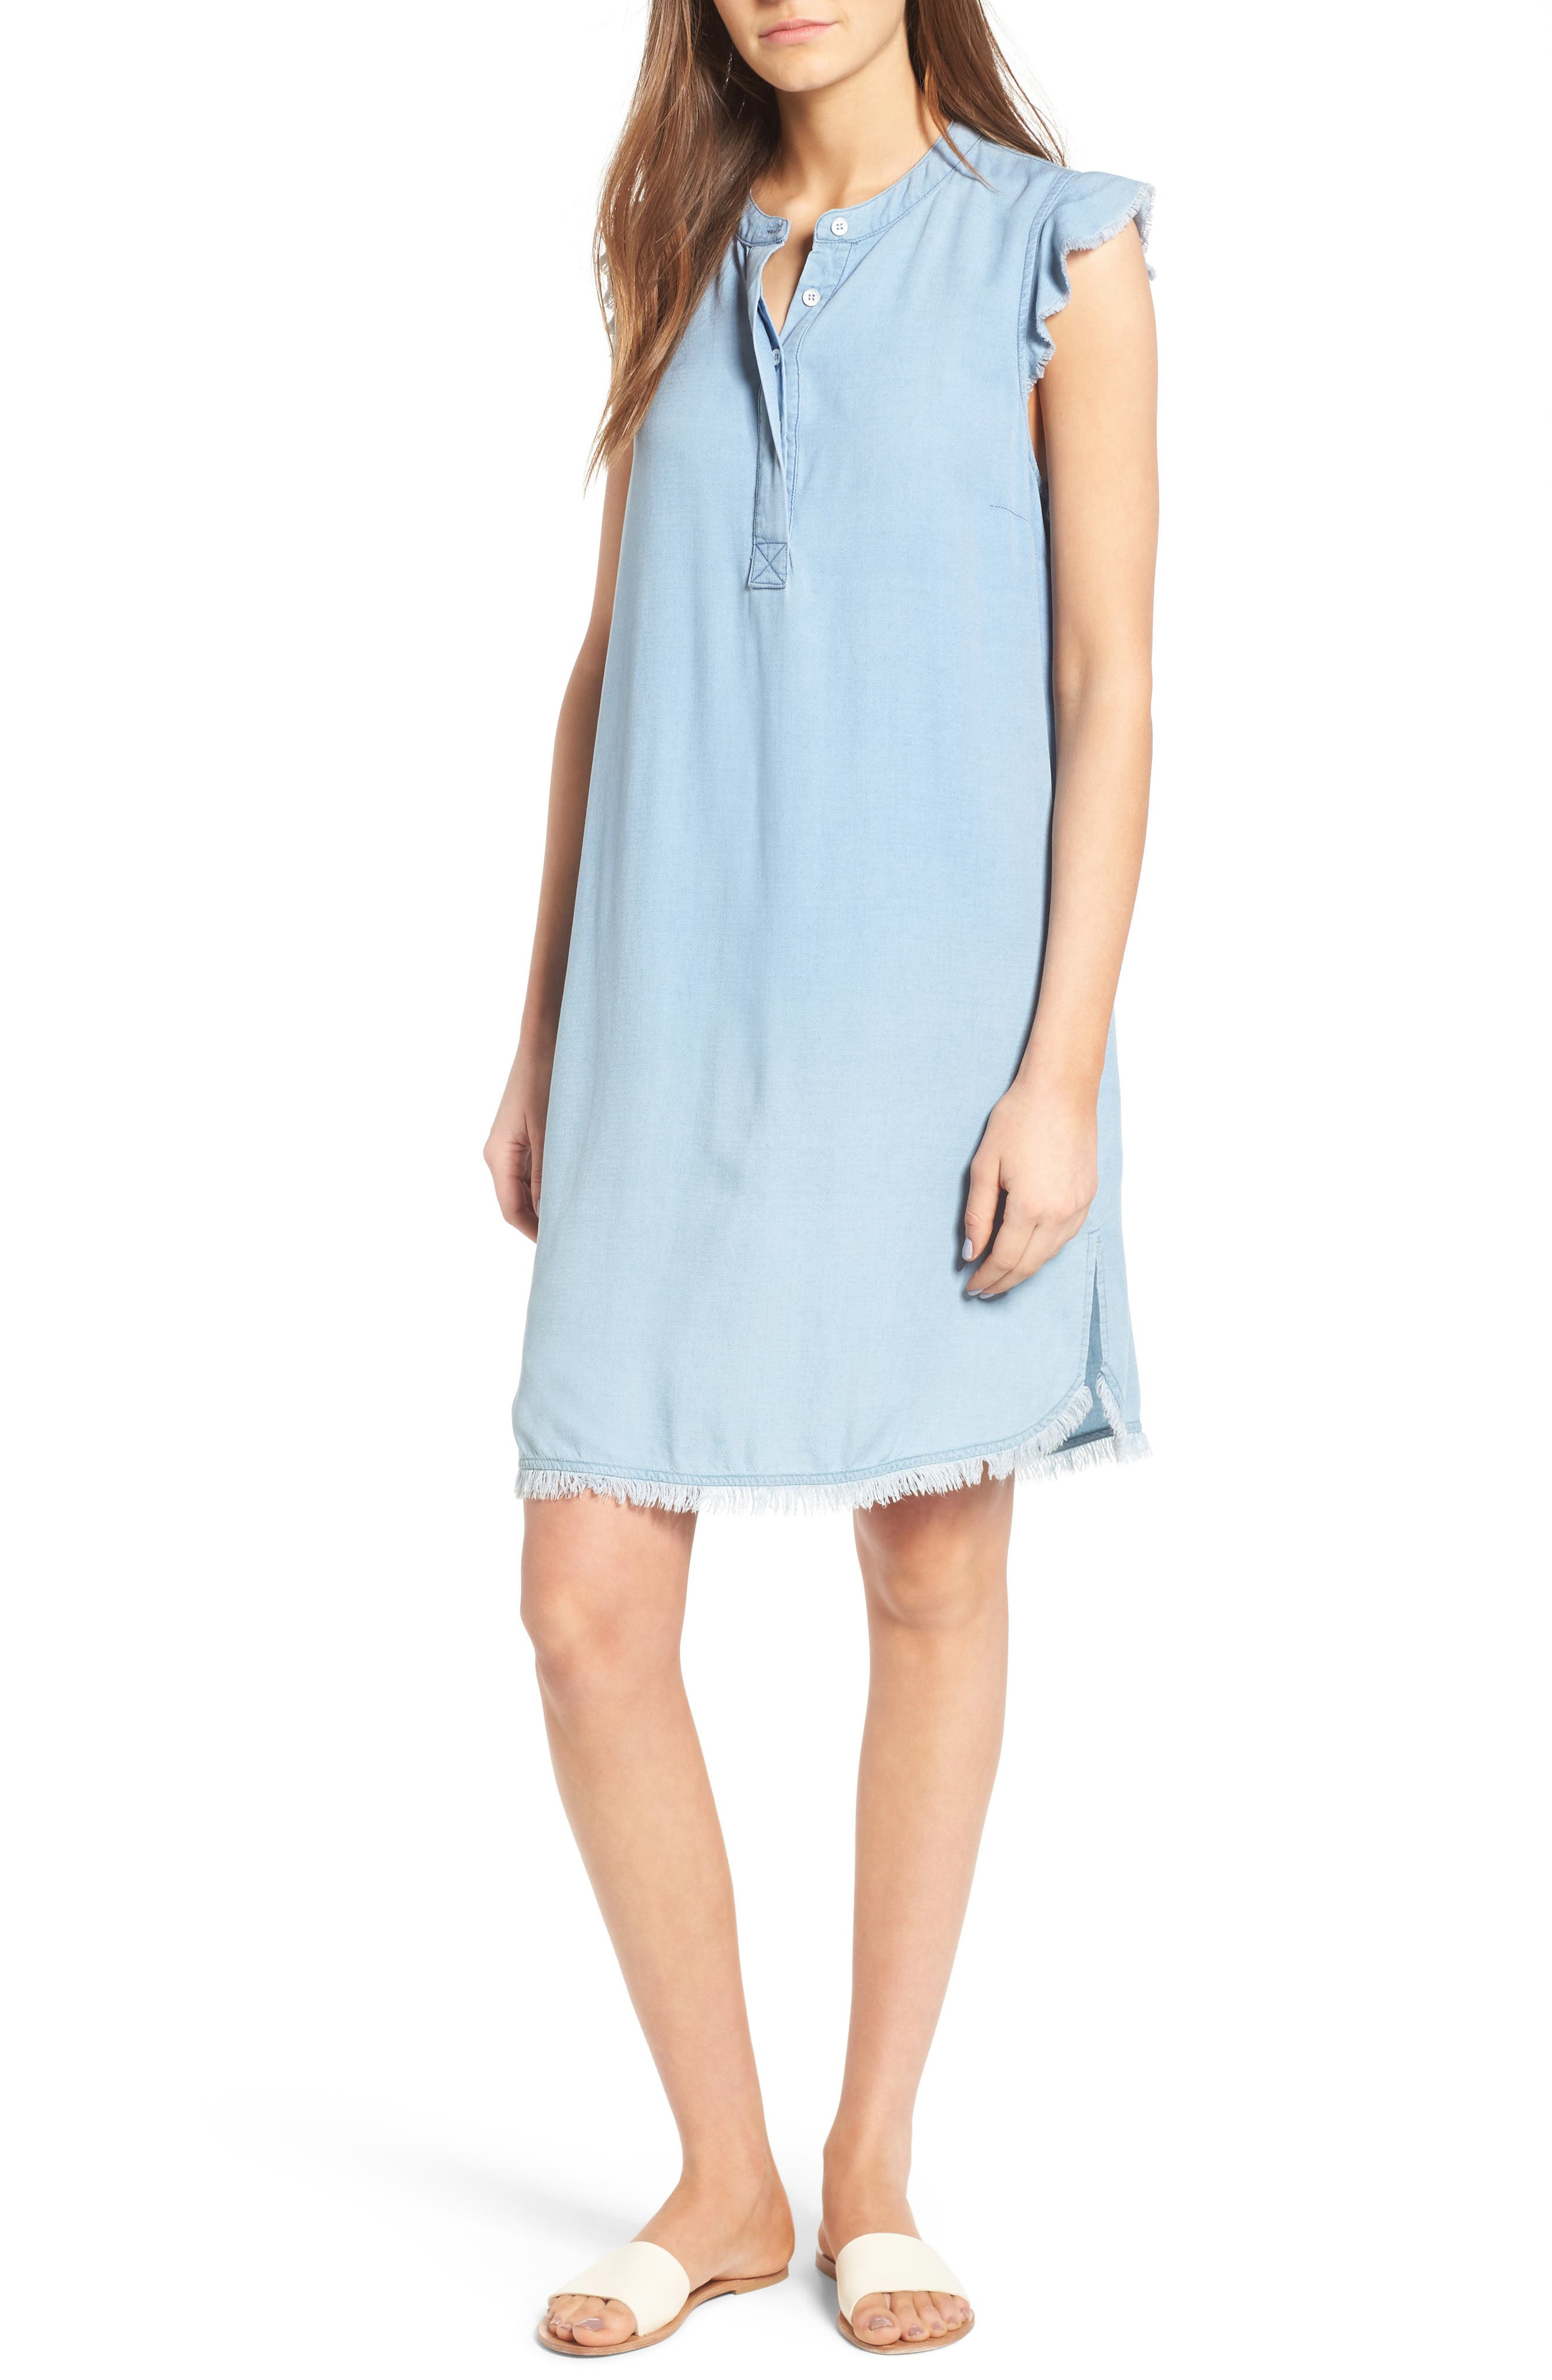 SPLENDID, Chambray Shift Dress, Main thumbnail 1, color, 400